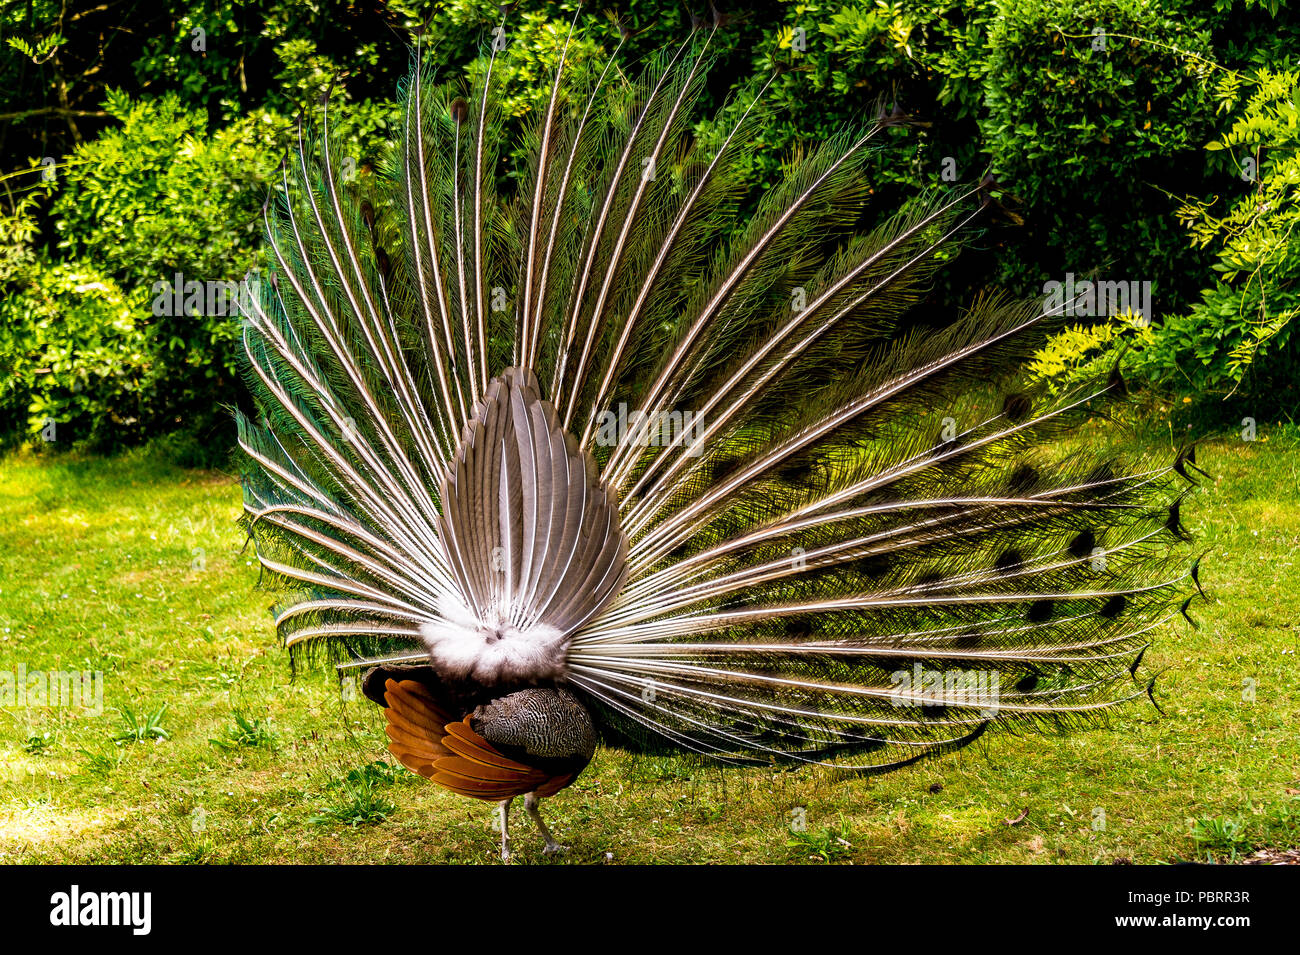 Peacock from behind with its plumage as he fans his tail in a park in Paris, France - Stock Image